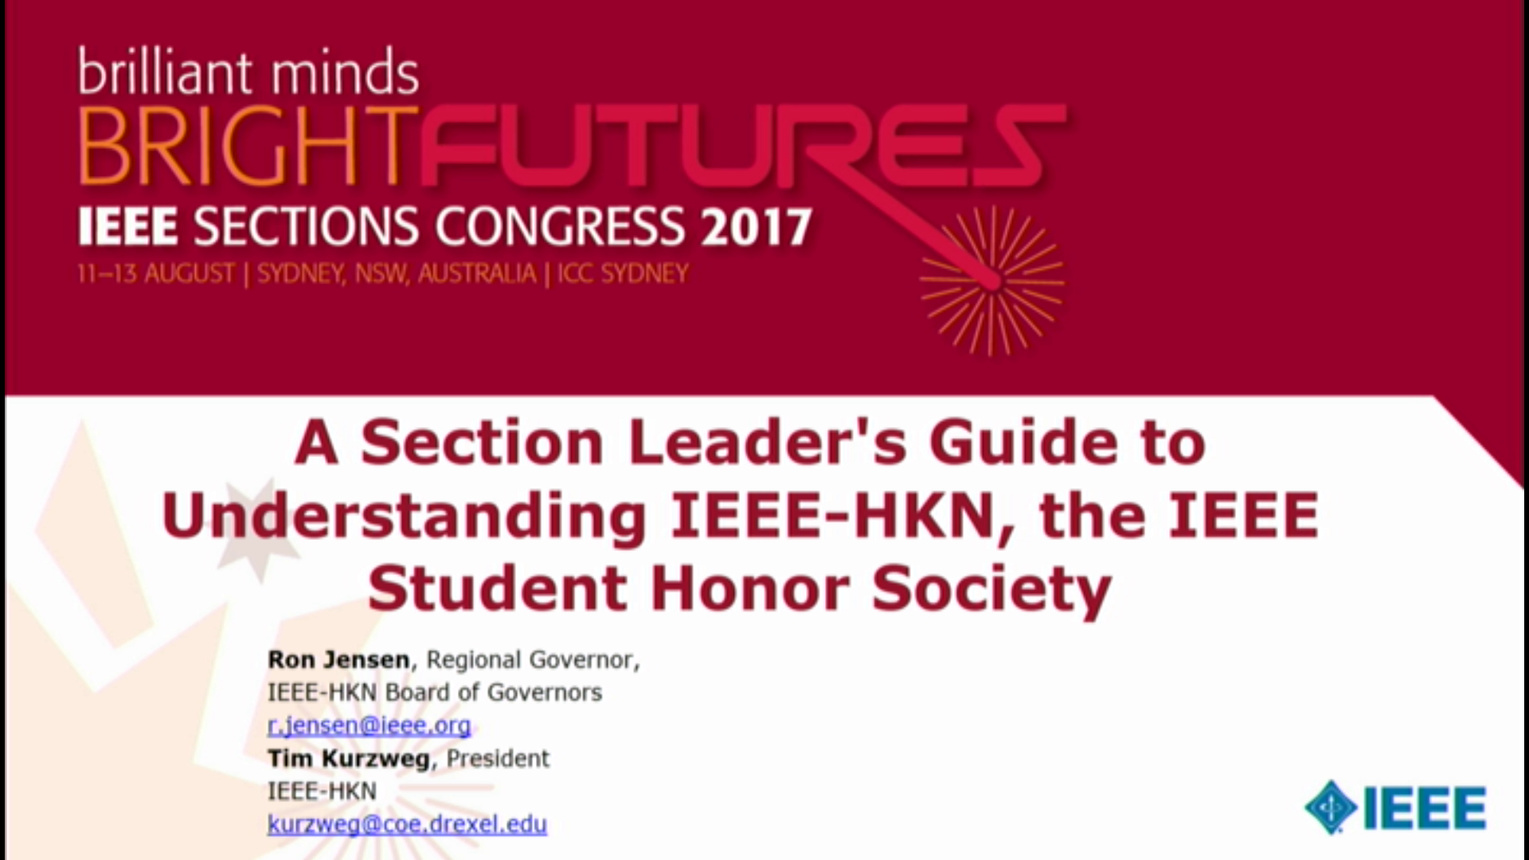 Section Leader's Guide to IEEE-HKN - Ron Jensen and Tim Kurzweg - Brief Sessions: Sections Congress 2017